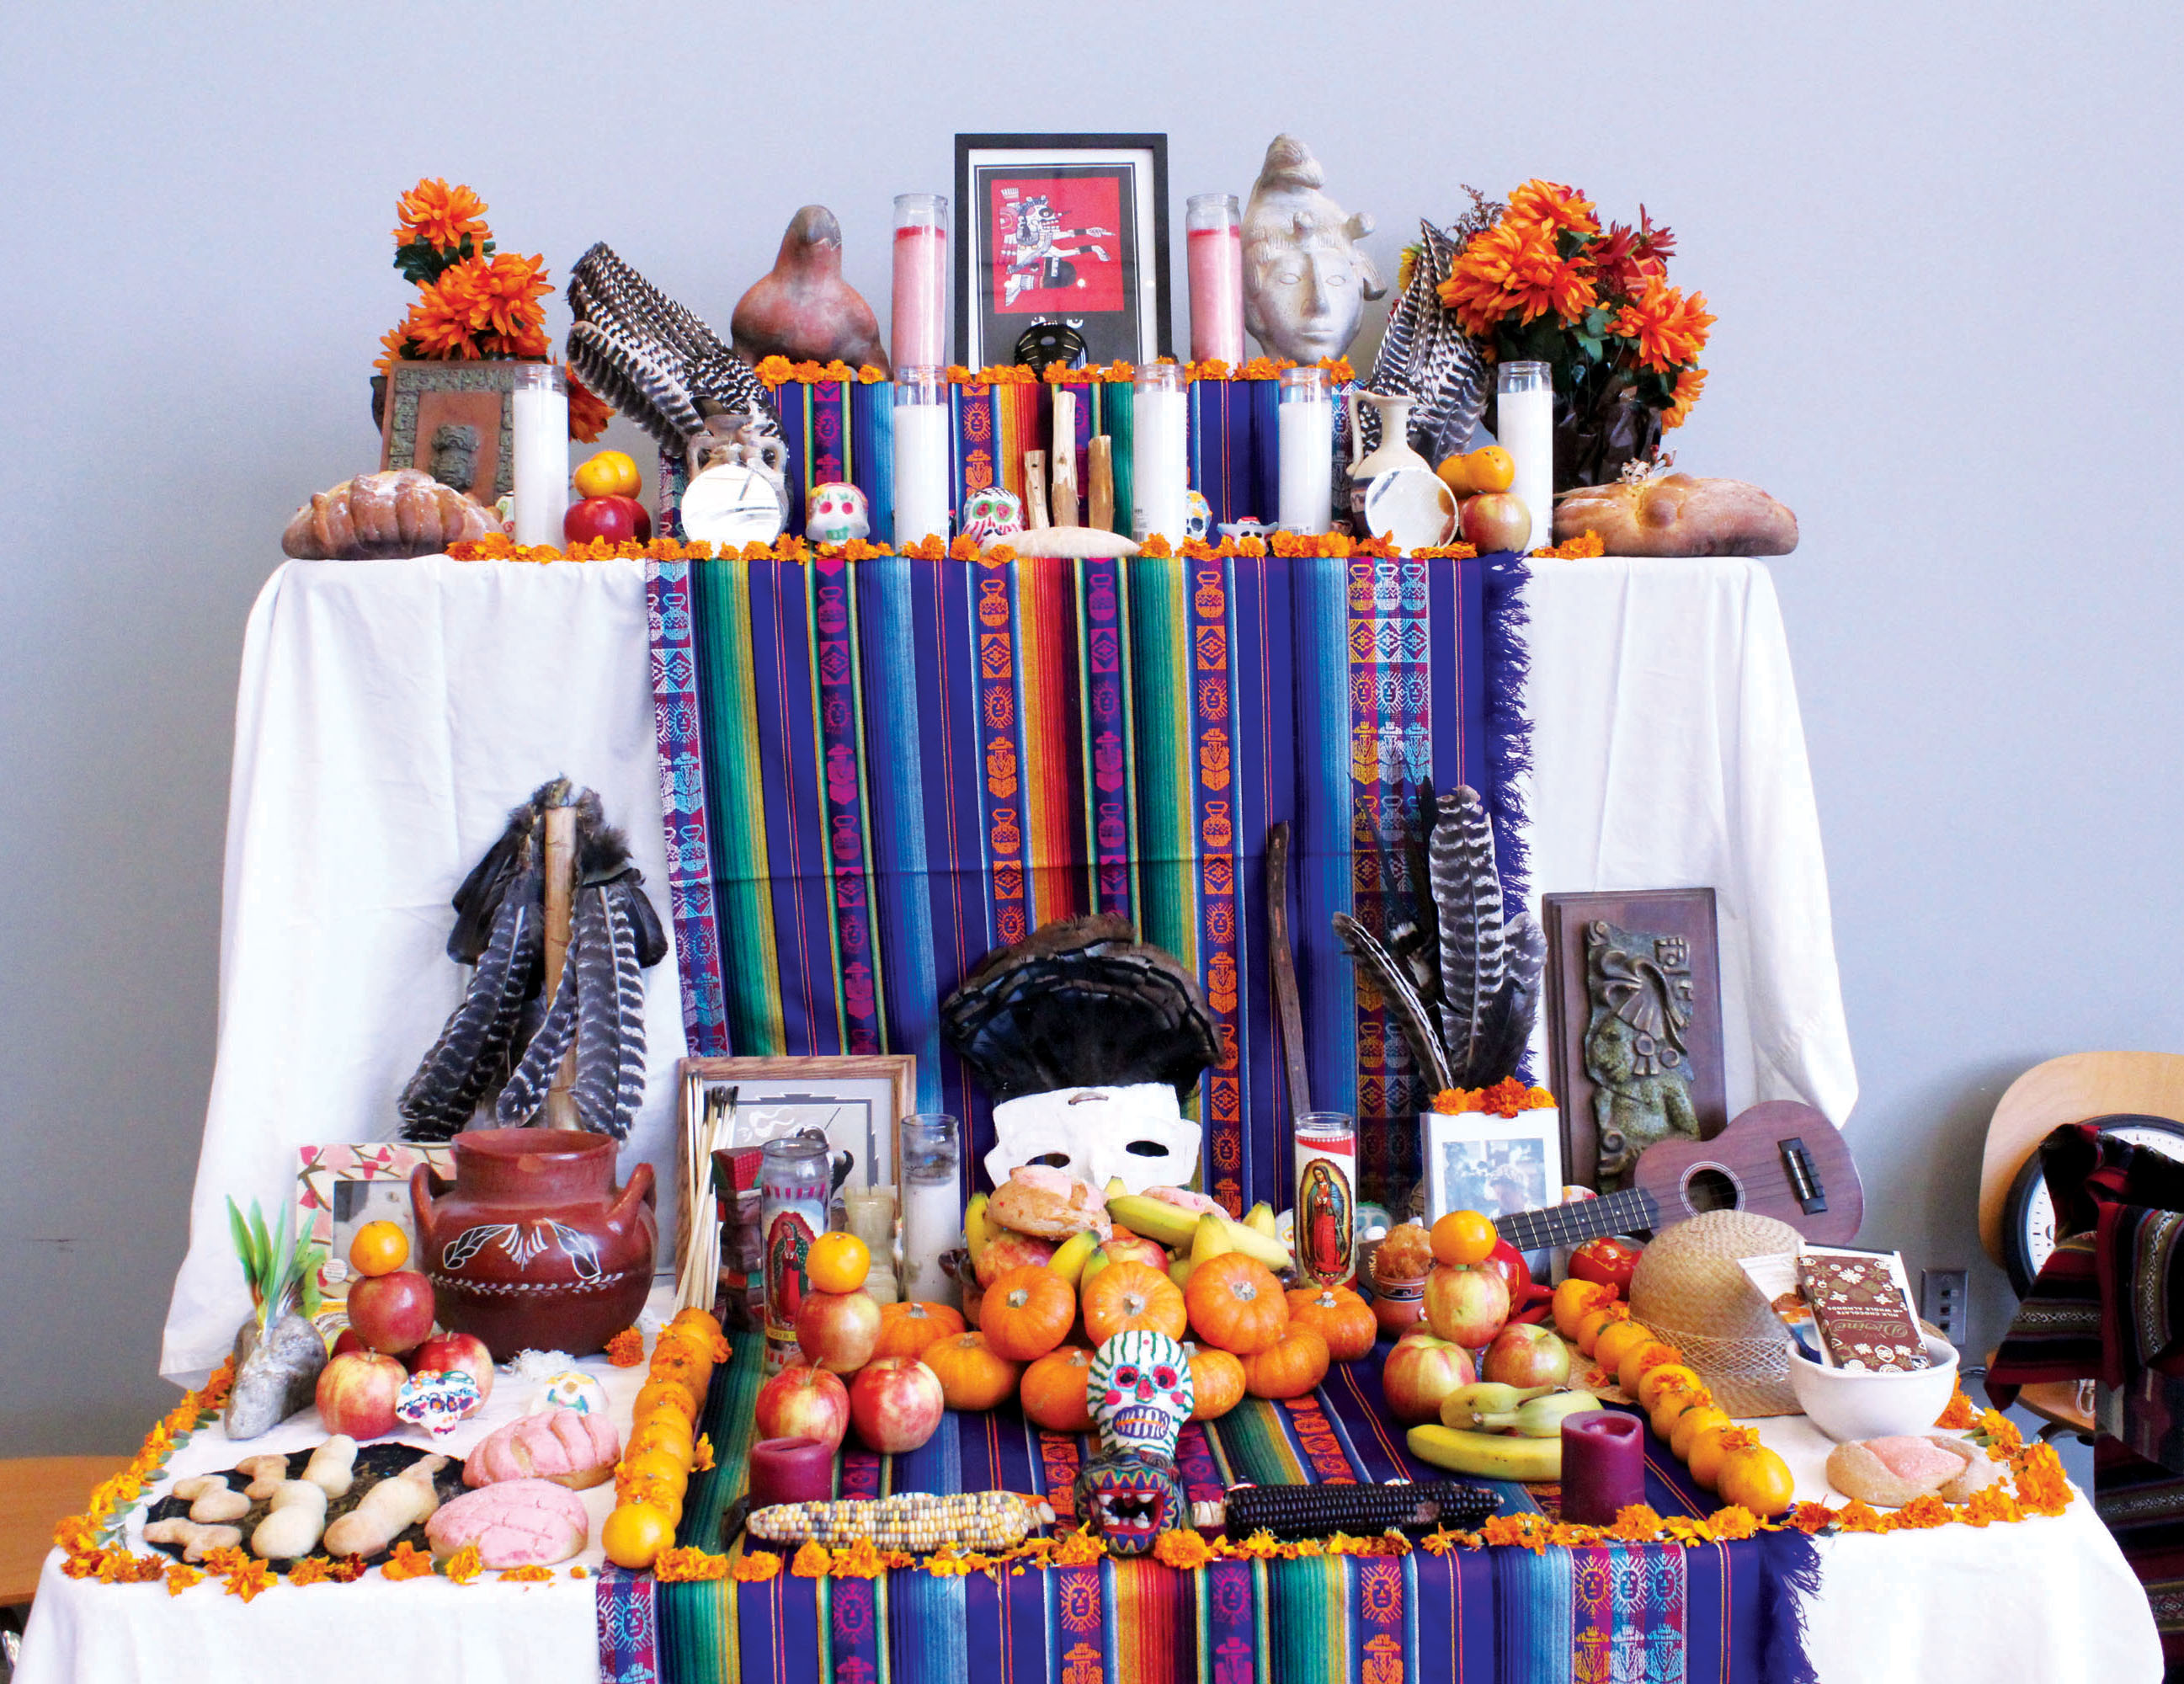 This altar celebrates both death and life.